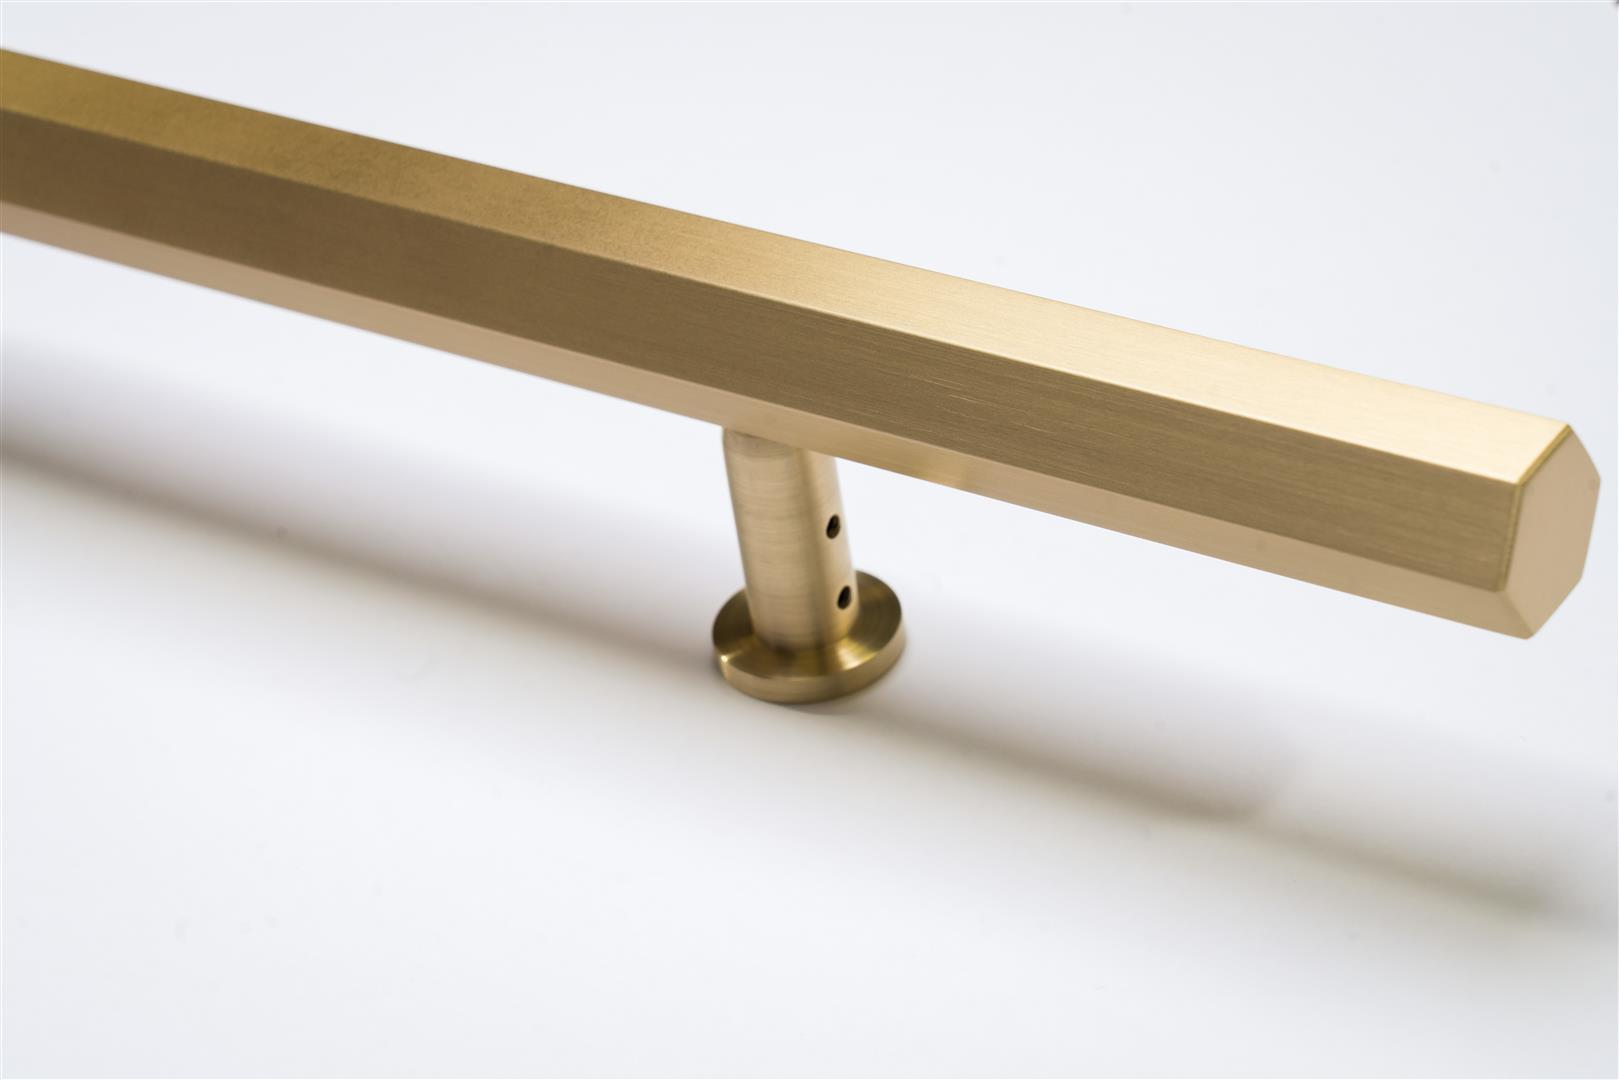 Custom Bronze Door and Drawer Pulls, Multiple Sizes and Finishes Available. Grained Satin and Lacquered Brass is Shown.